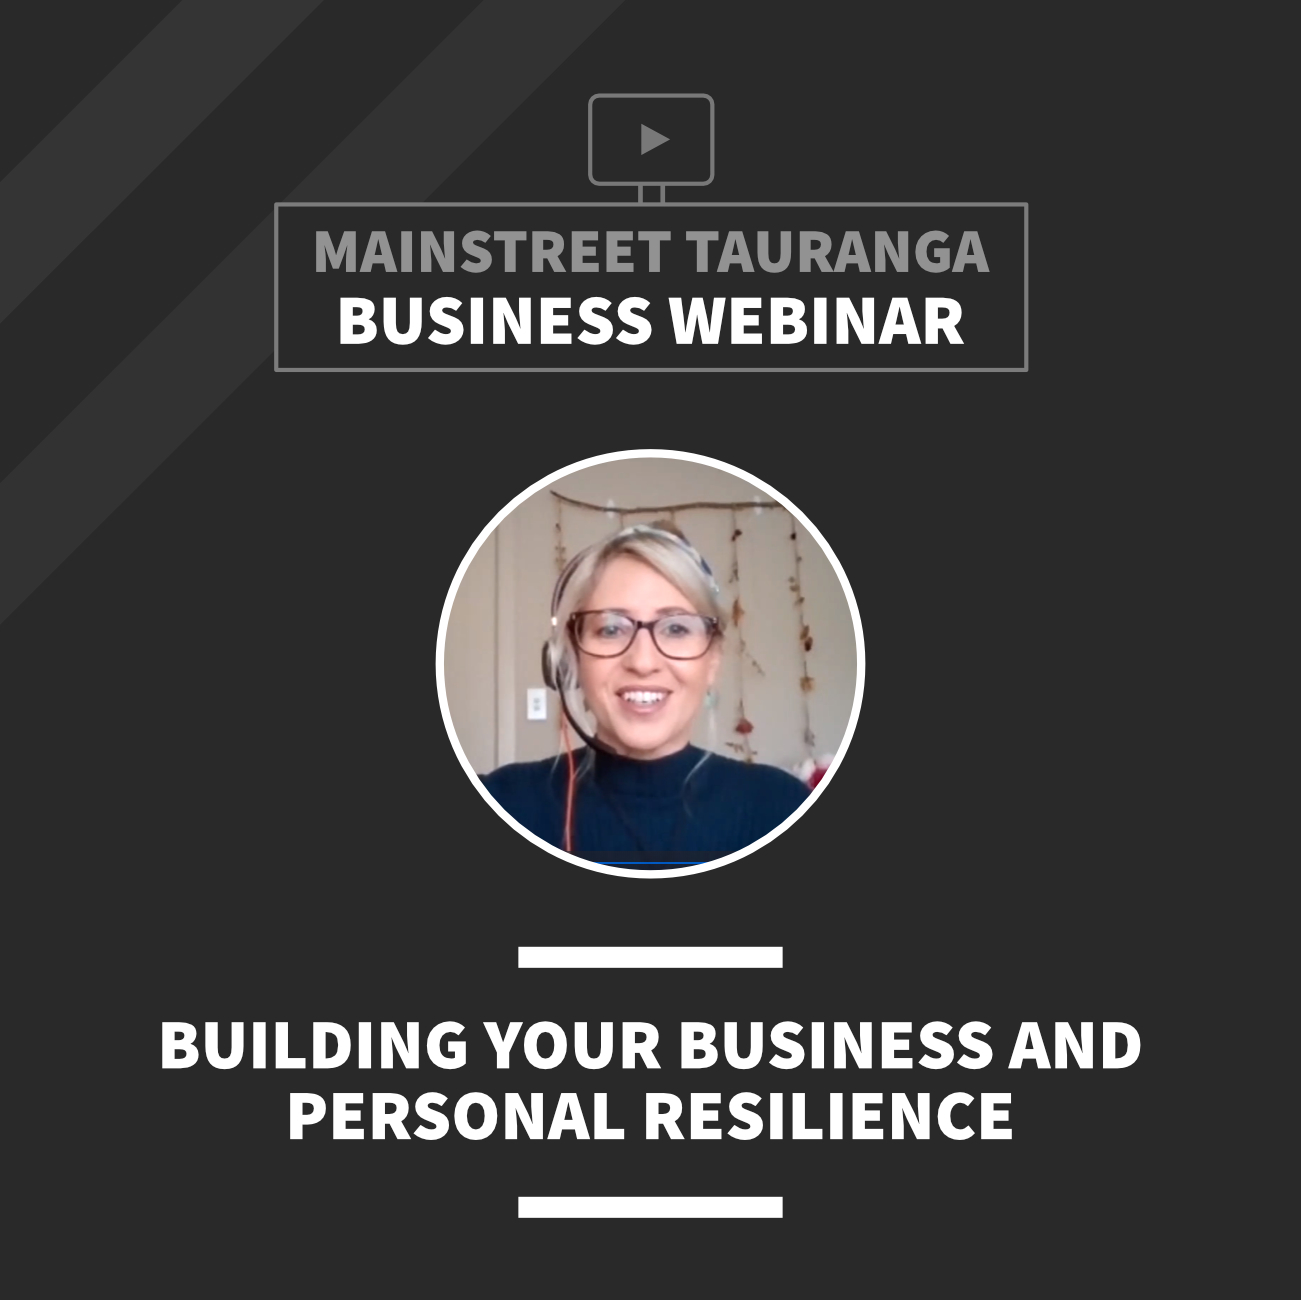 Build your business and personal resilience